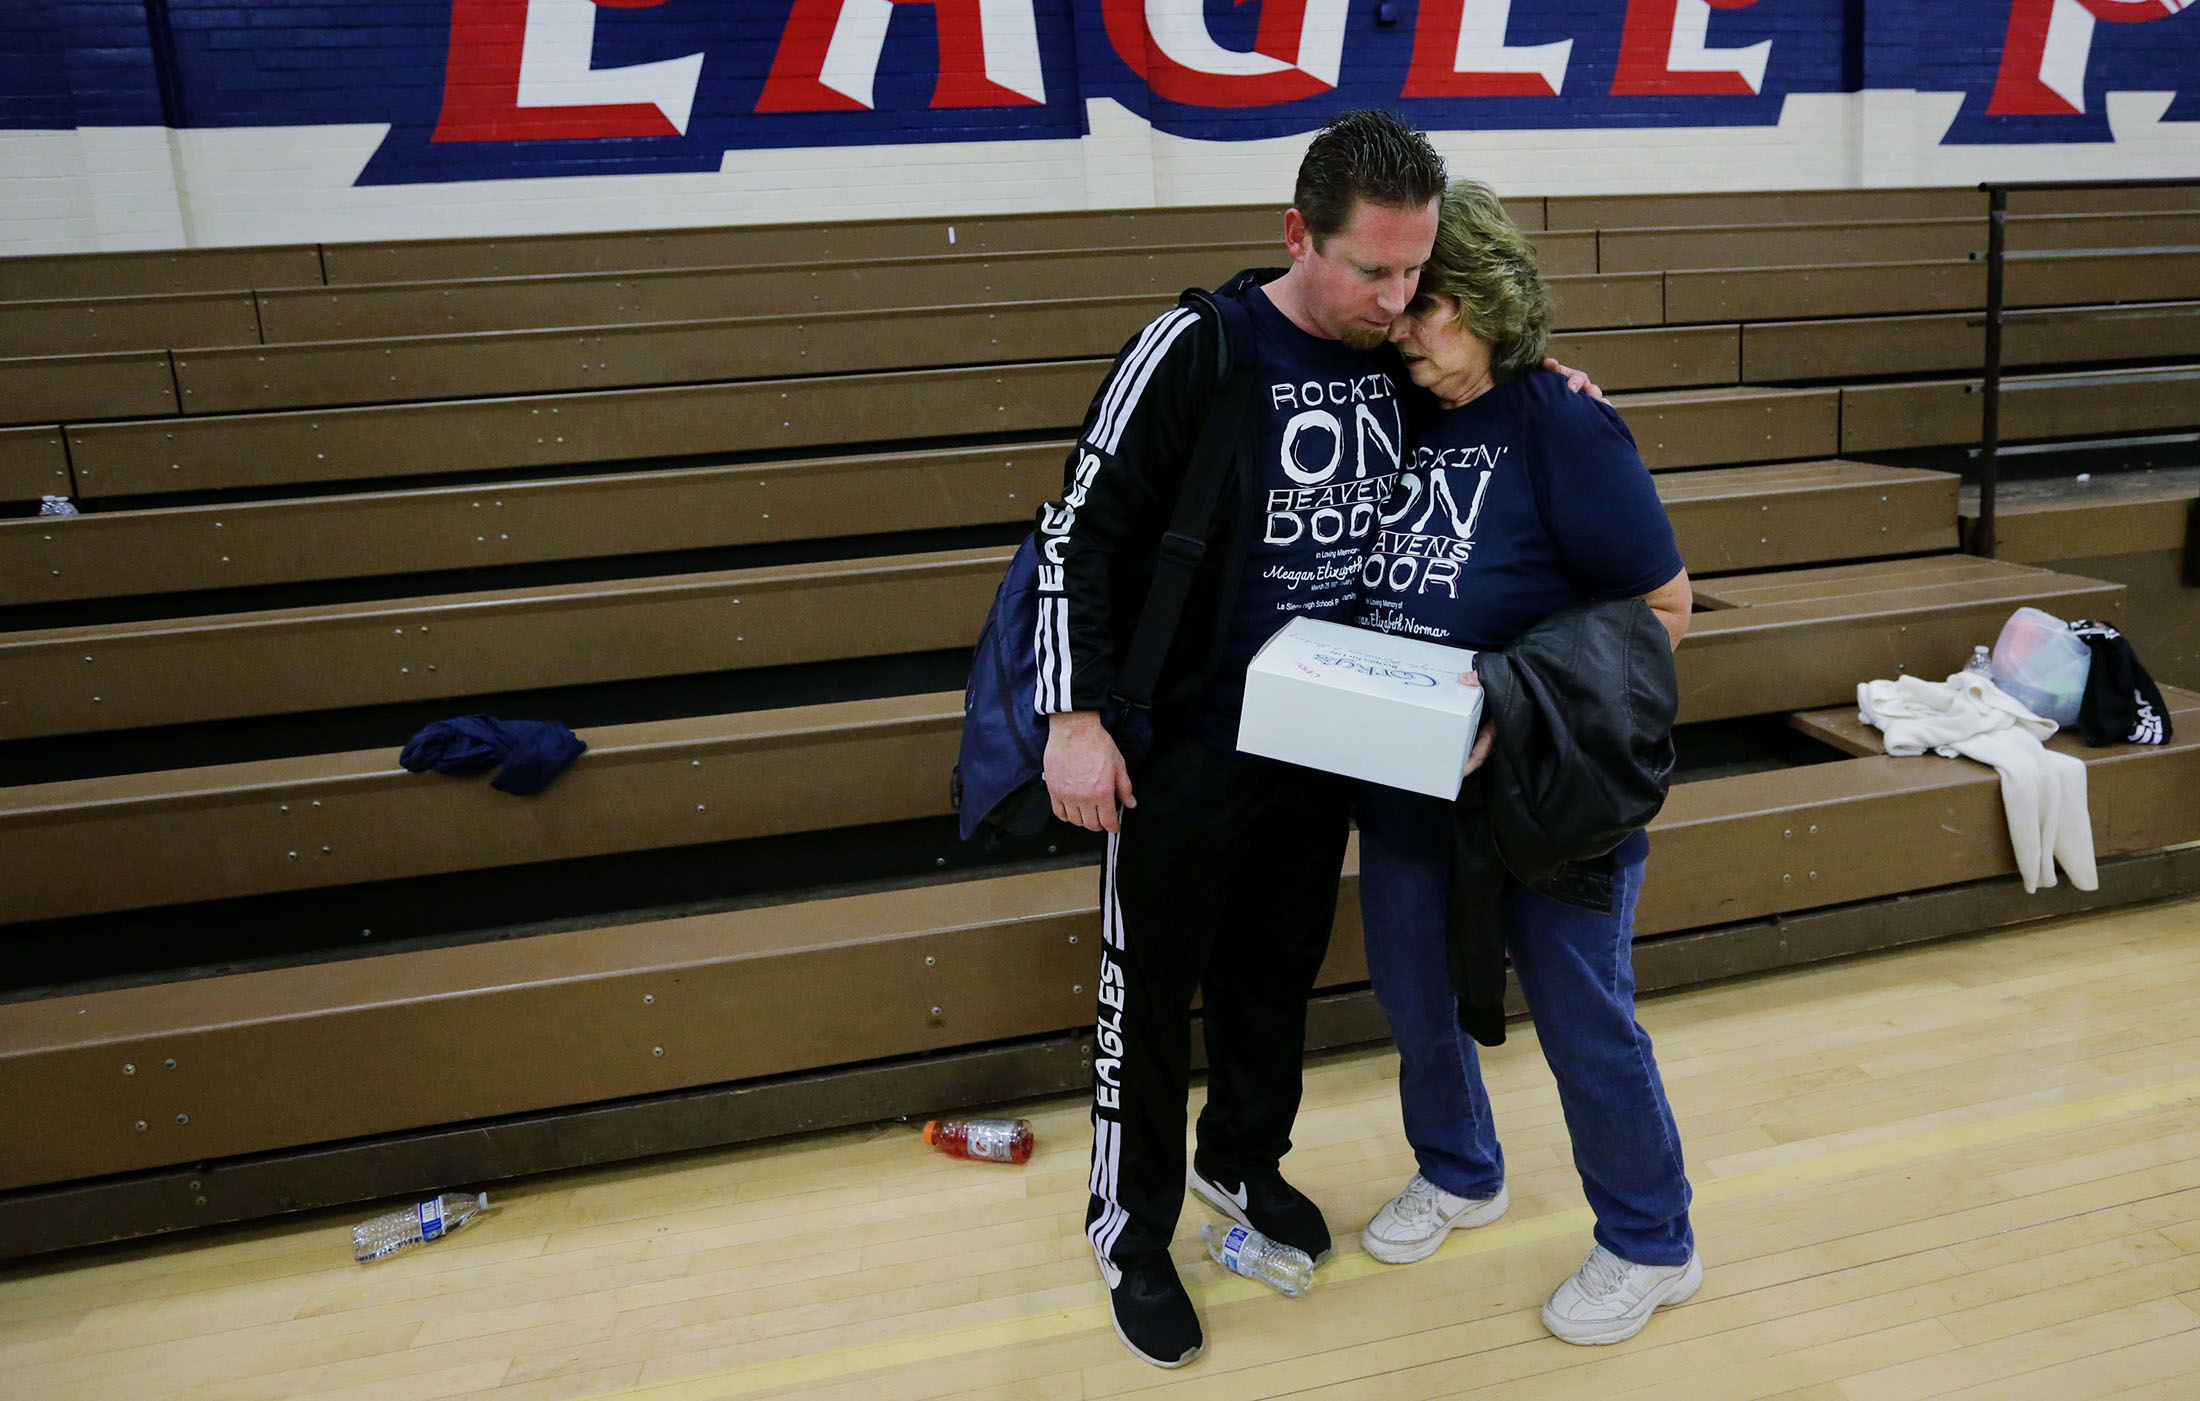 A family hug for La Sierra boys basketball coach Justin Norman and mother in law Claudia Duffield, 10 days after the sudden death of his wife and her daughter, Meagan. Norman was back on the court coaching La Sierra against the Patriots with the help and support of his family and friends in Riverside on Friday, January 11, 2019.